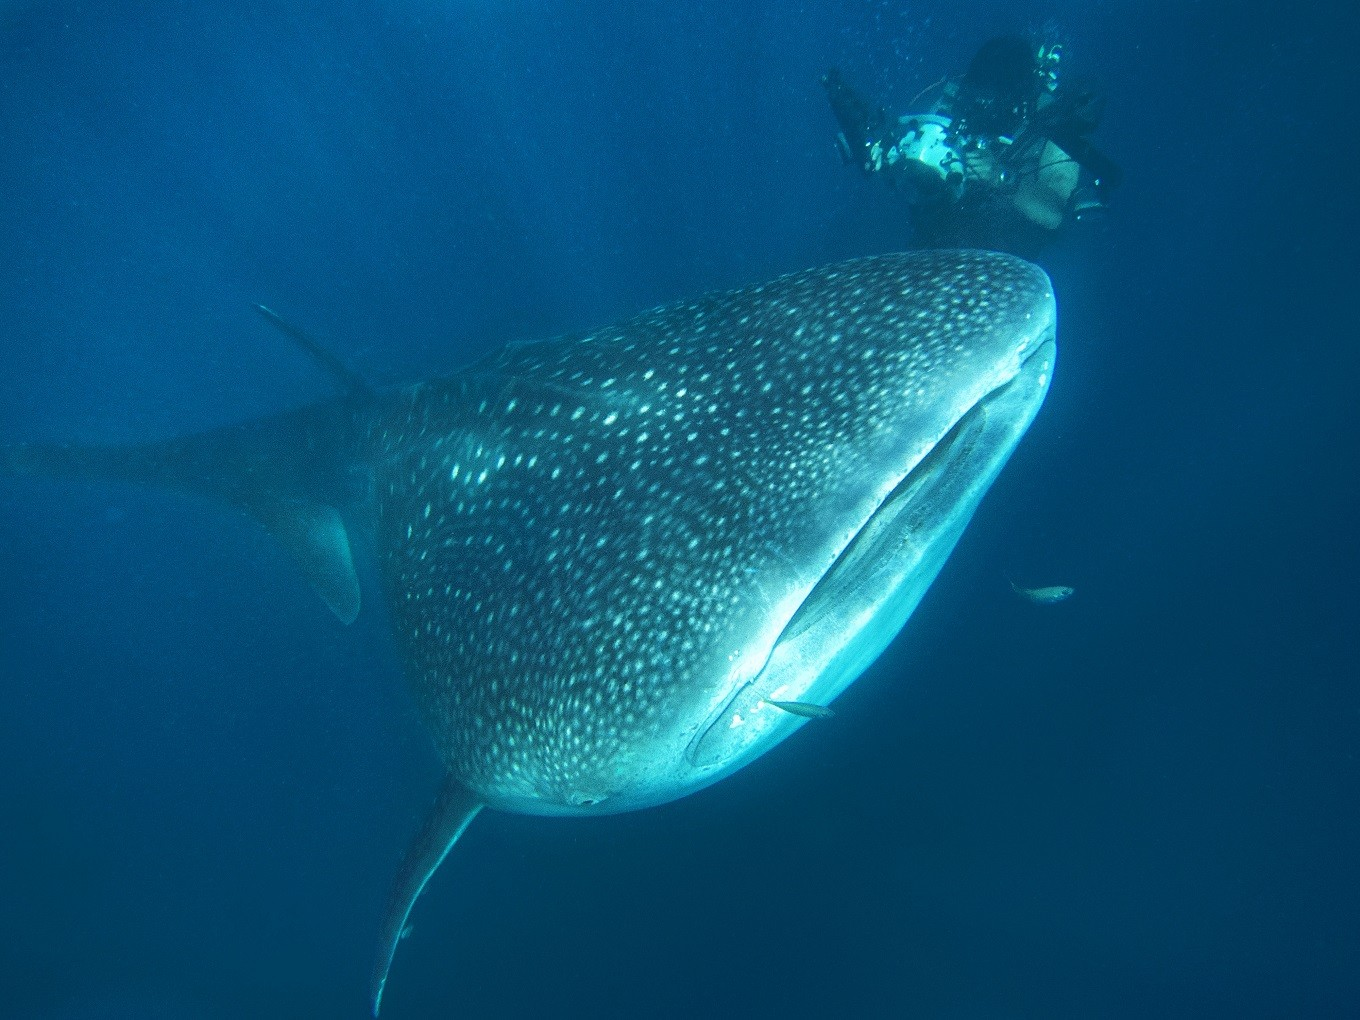 Since the whaleshark's picture went viral, Gorontalo has become one of the hippest local destinations in Indonesia